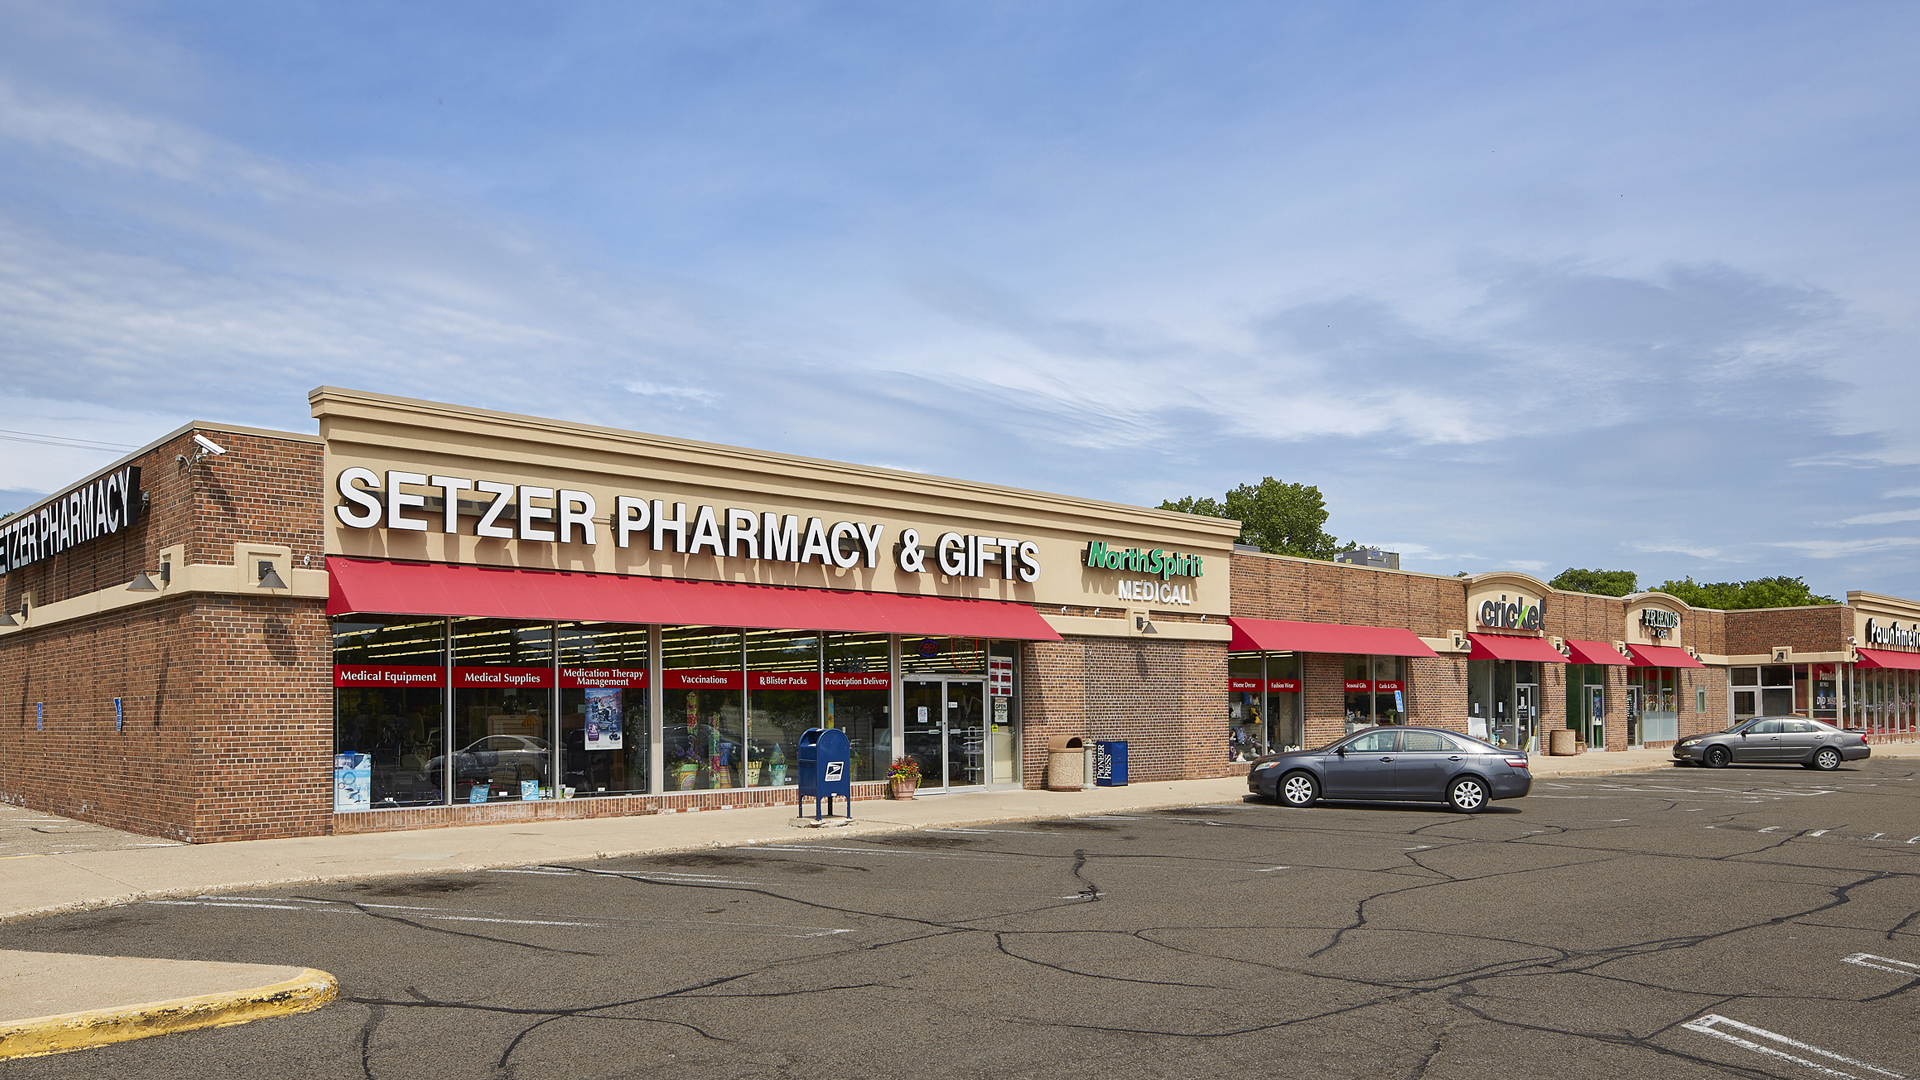 McCarron Hills Retail Shopping Center Roseville MN exterior view featuring Setzer Pharmacy